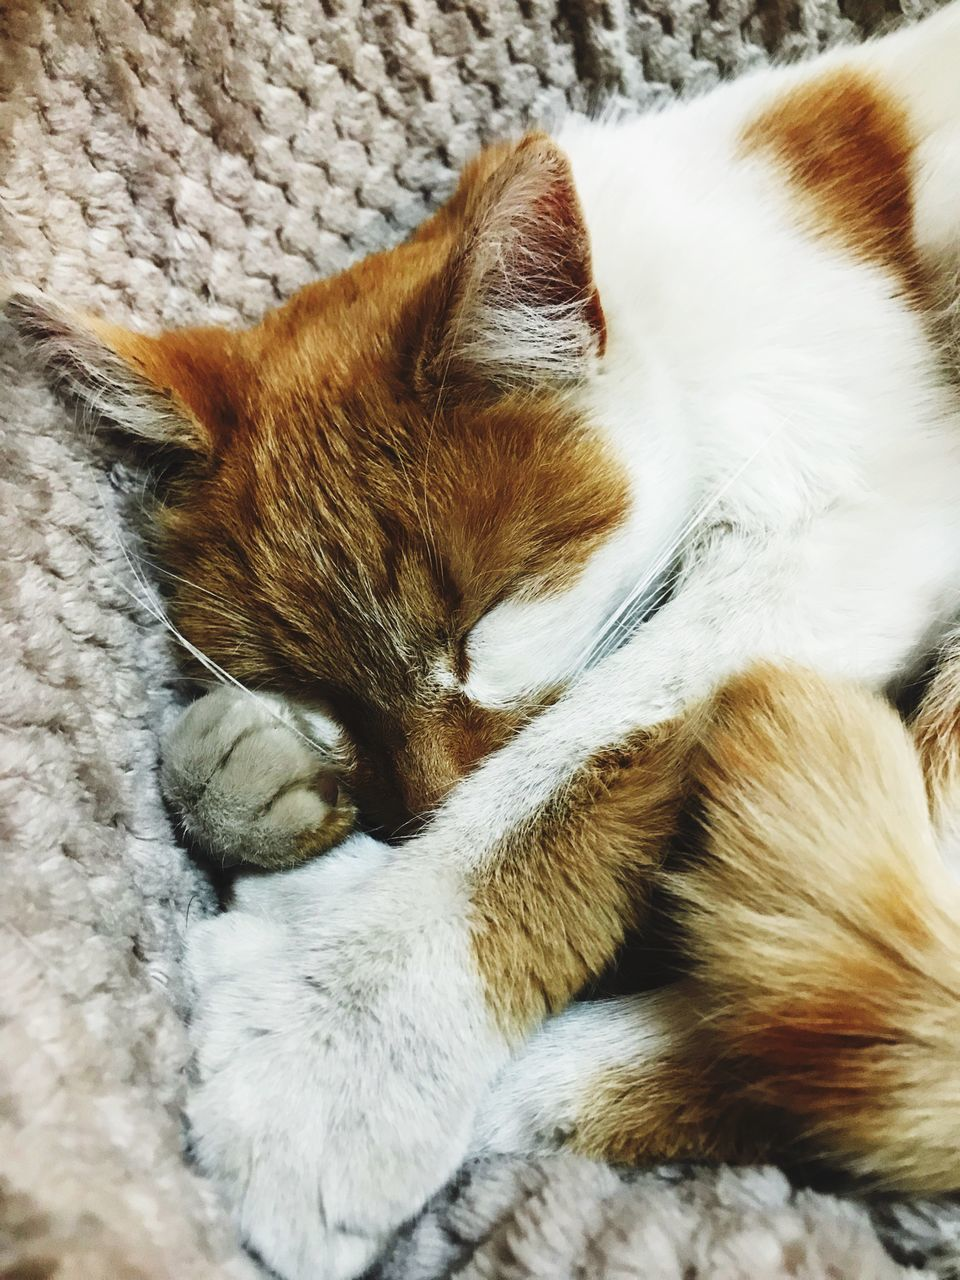 domestic cat, cat, domestic, feline, mammal, domestic animals, pets, animal themes, animal, one animal, vertebrate, relaxation, sleeping, eyes closed, resting, no people, indoors, lying down, close-up, high angle view, whisker, napping